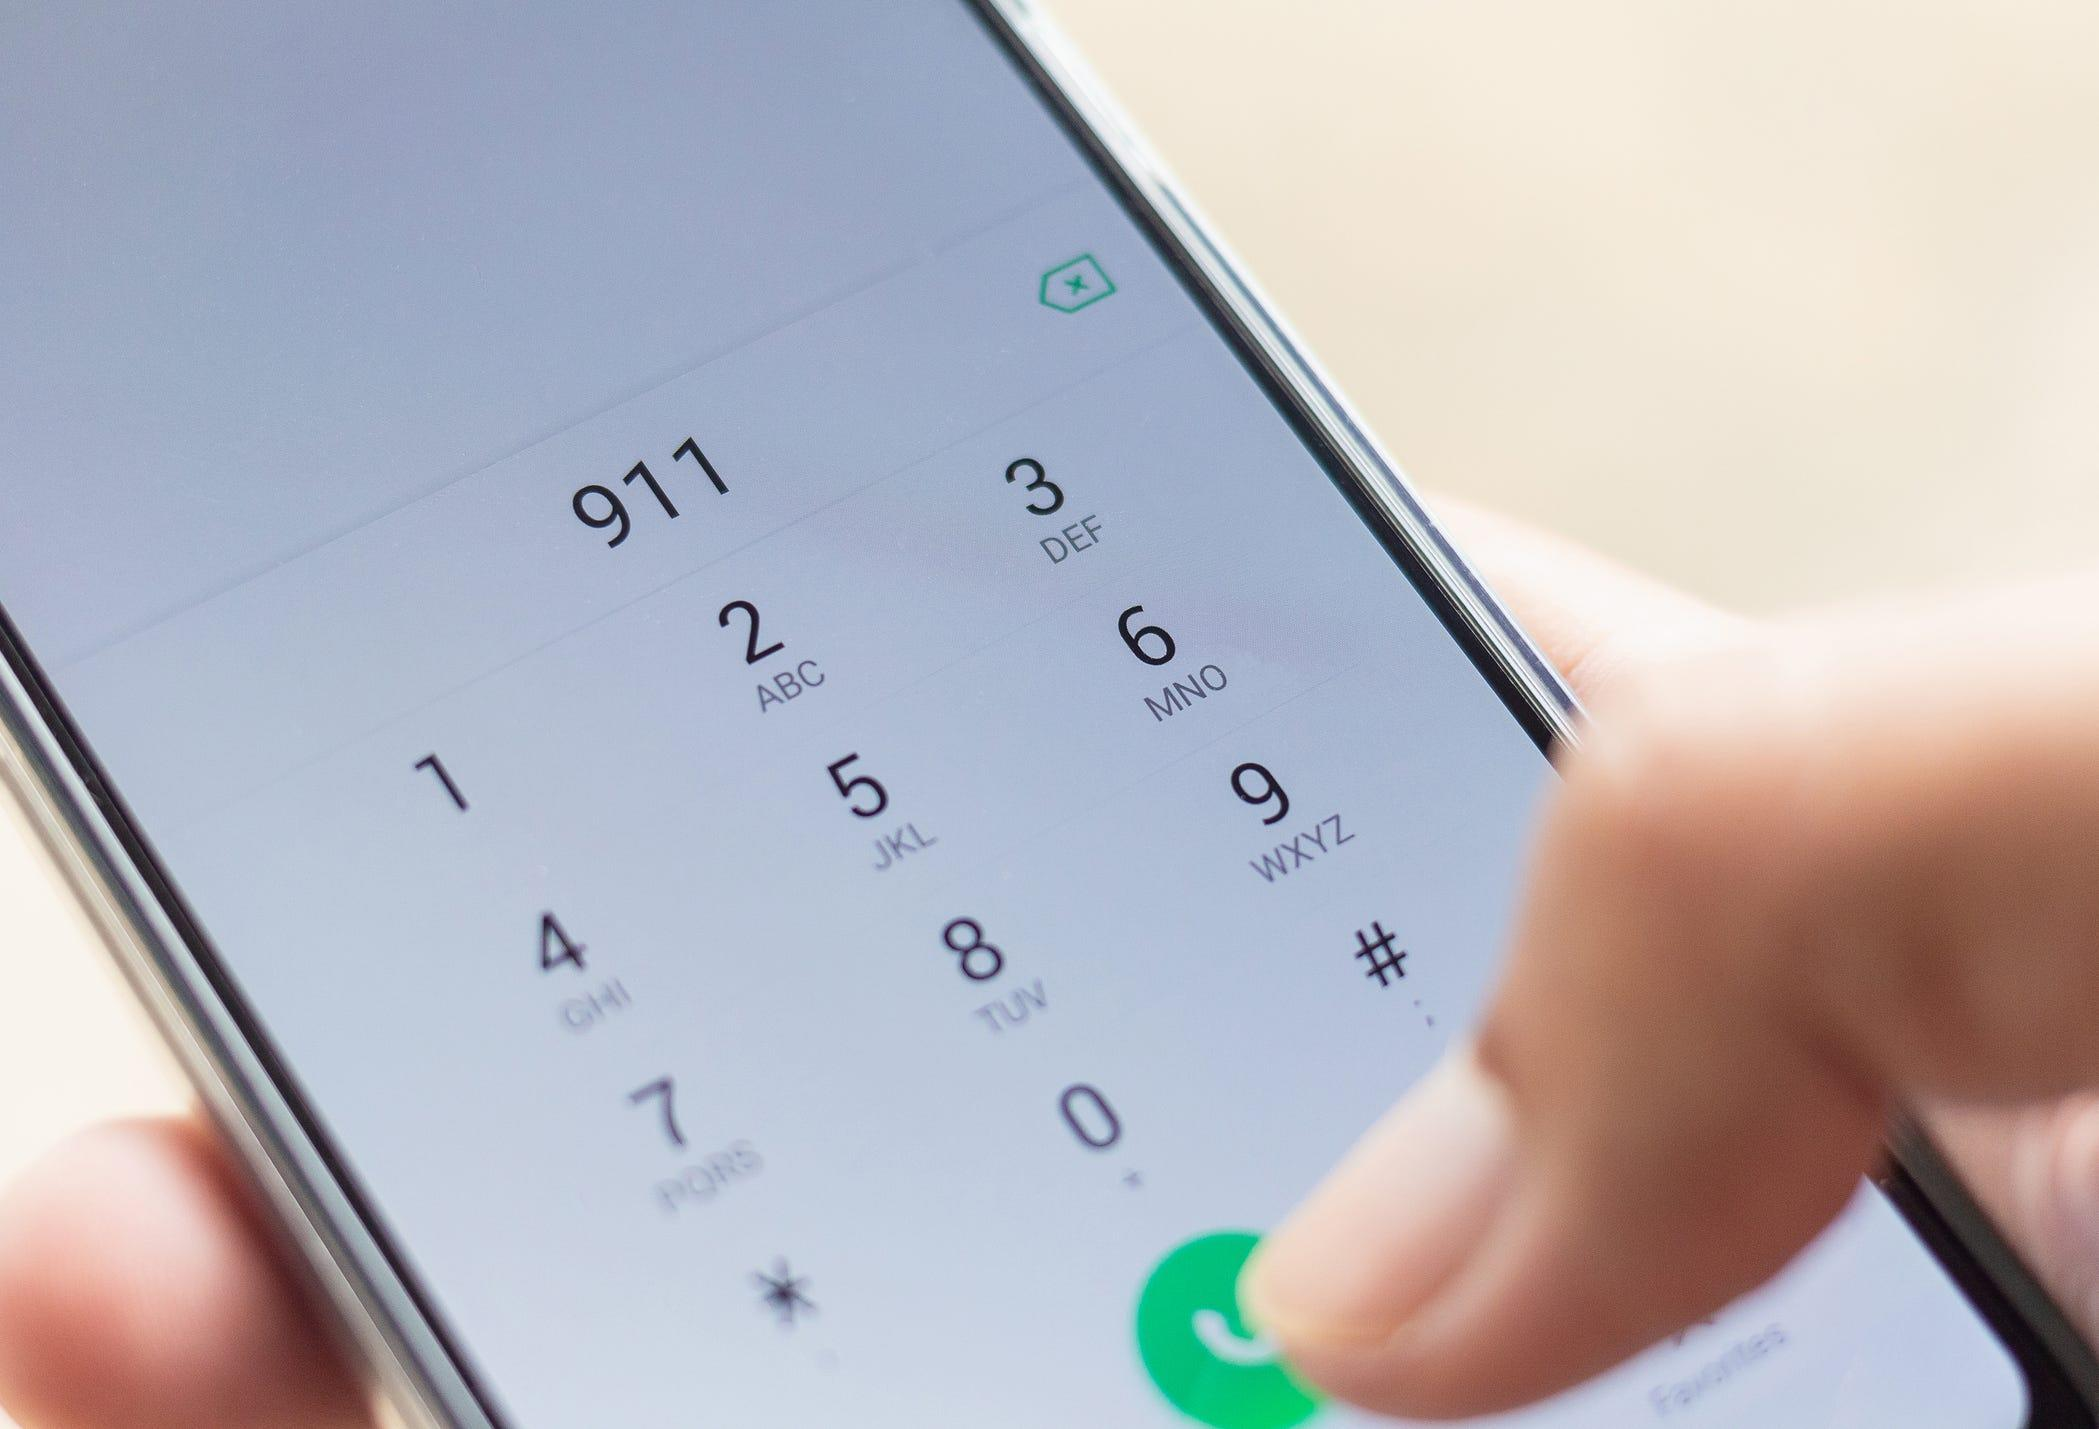 San Francisco lawmaker introduces CAREN Act to crack down on racially-motivated 911 calls